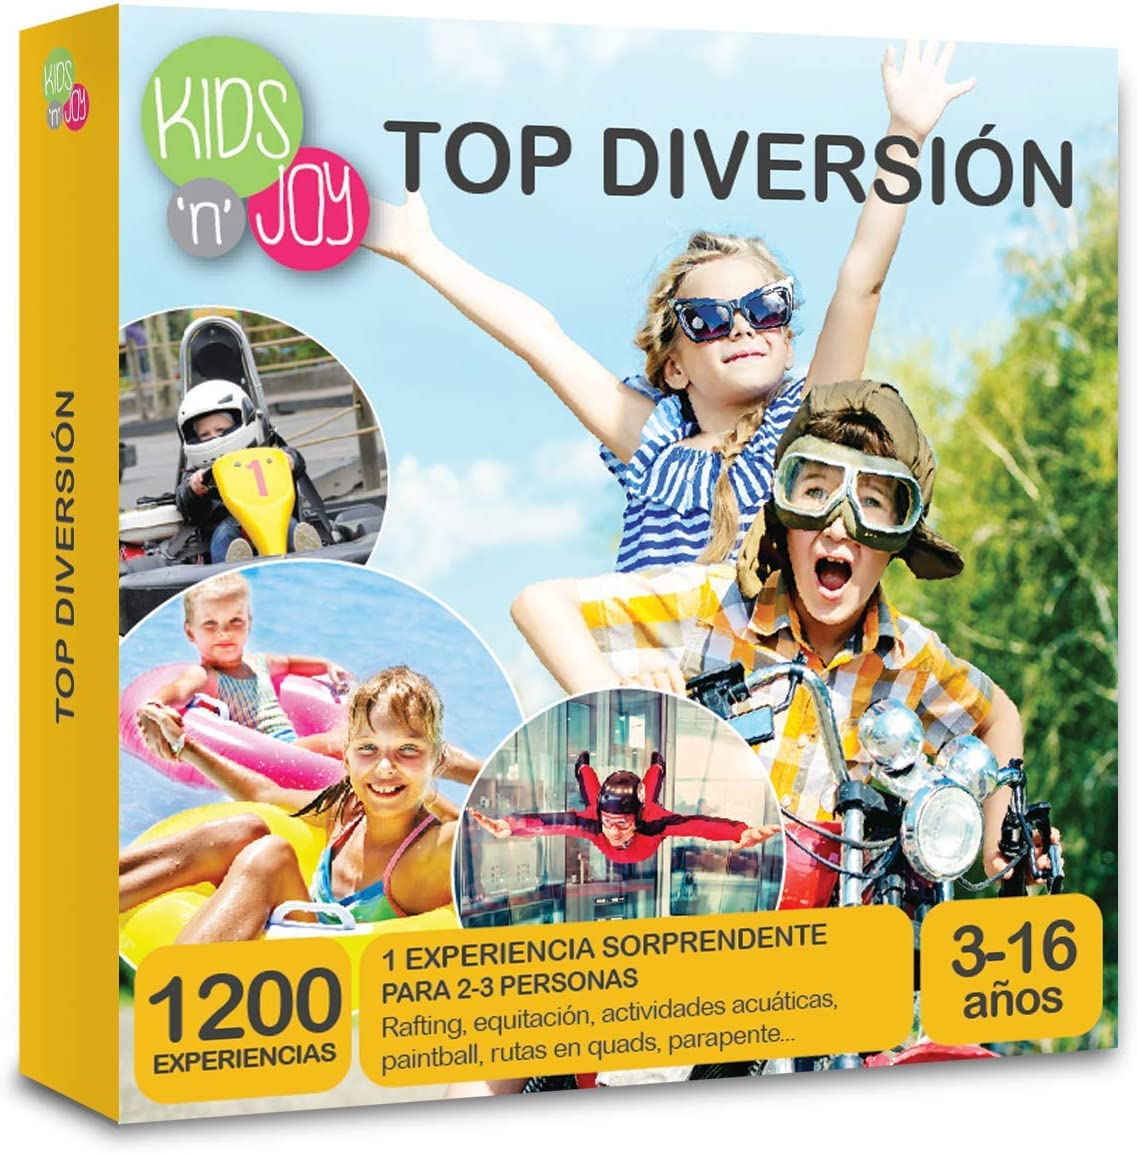 kids n joy top diversion